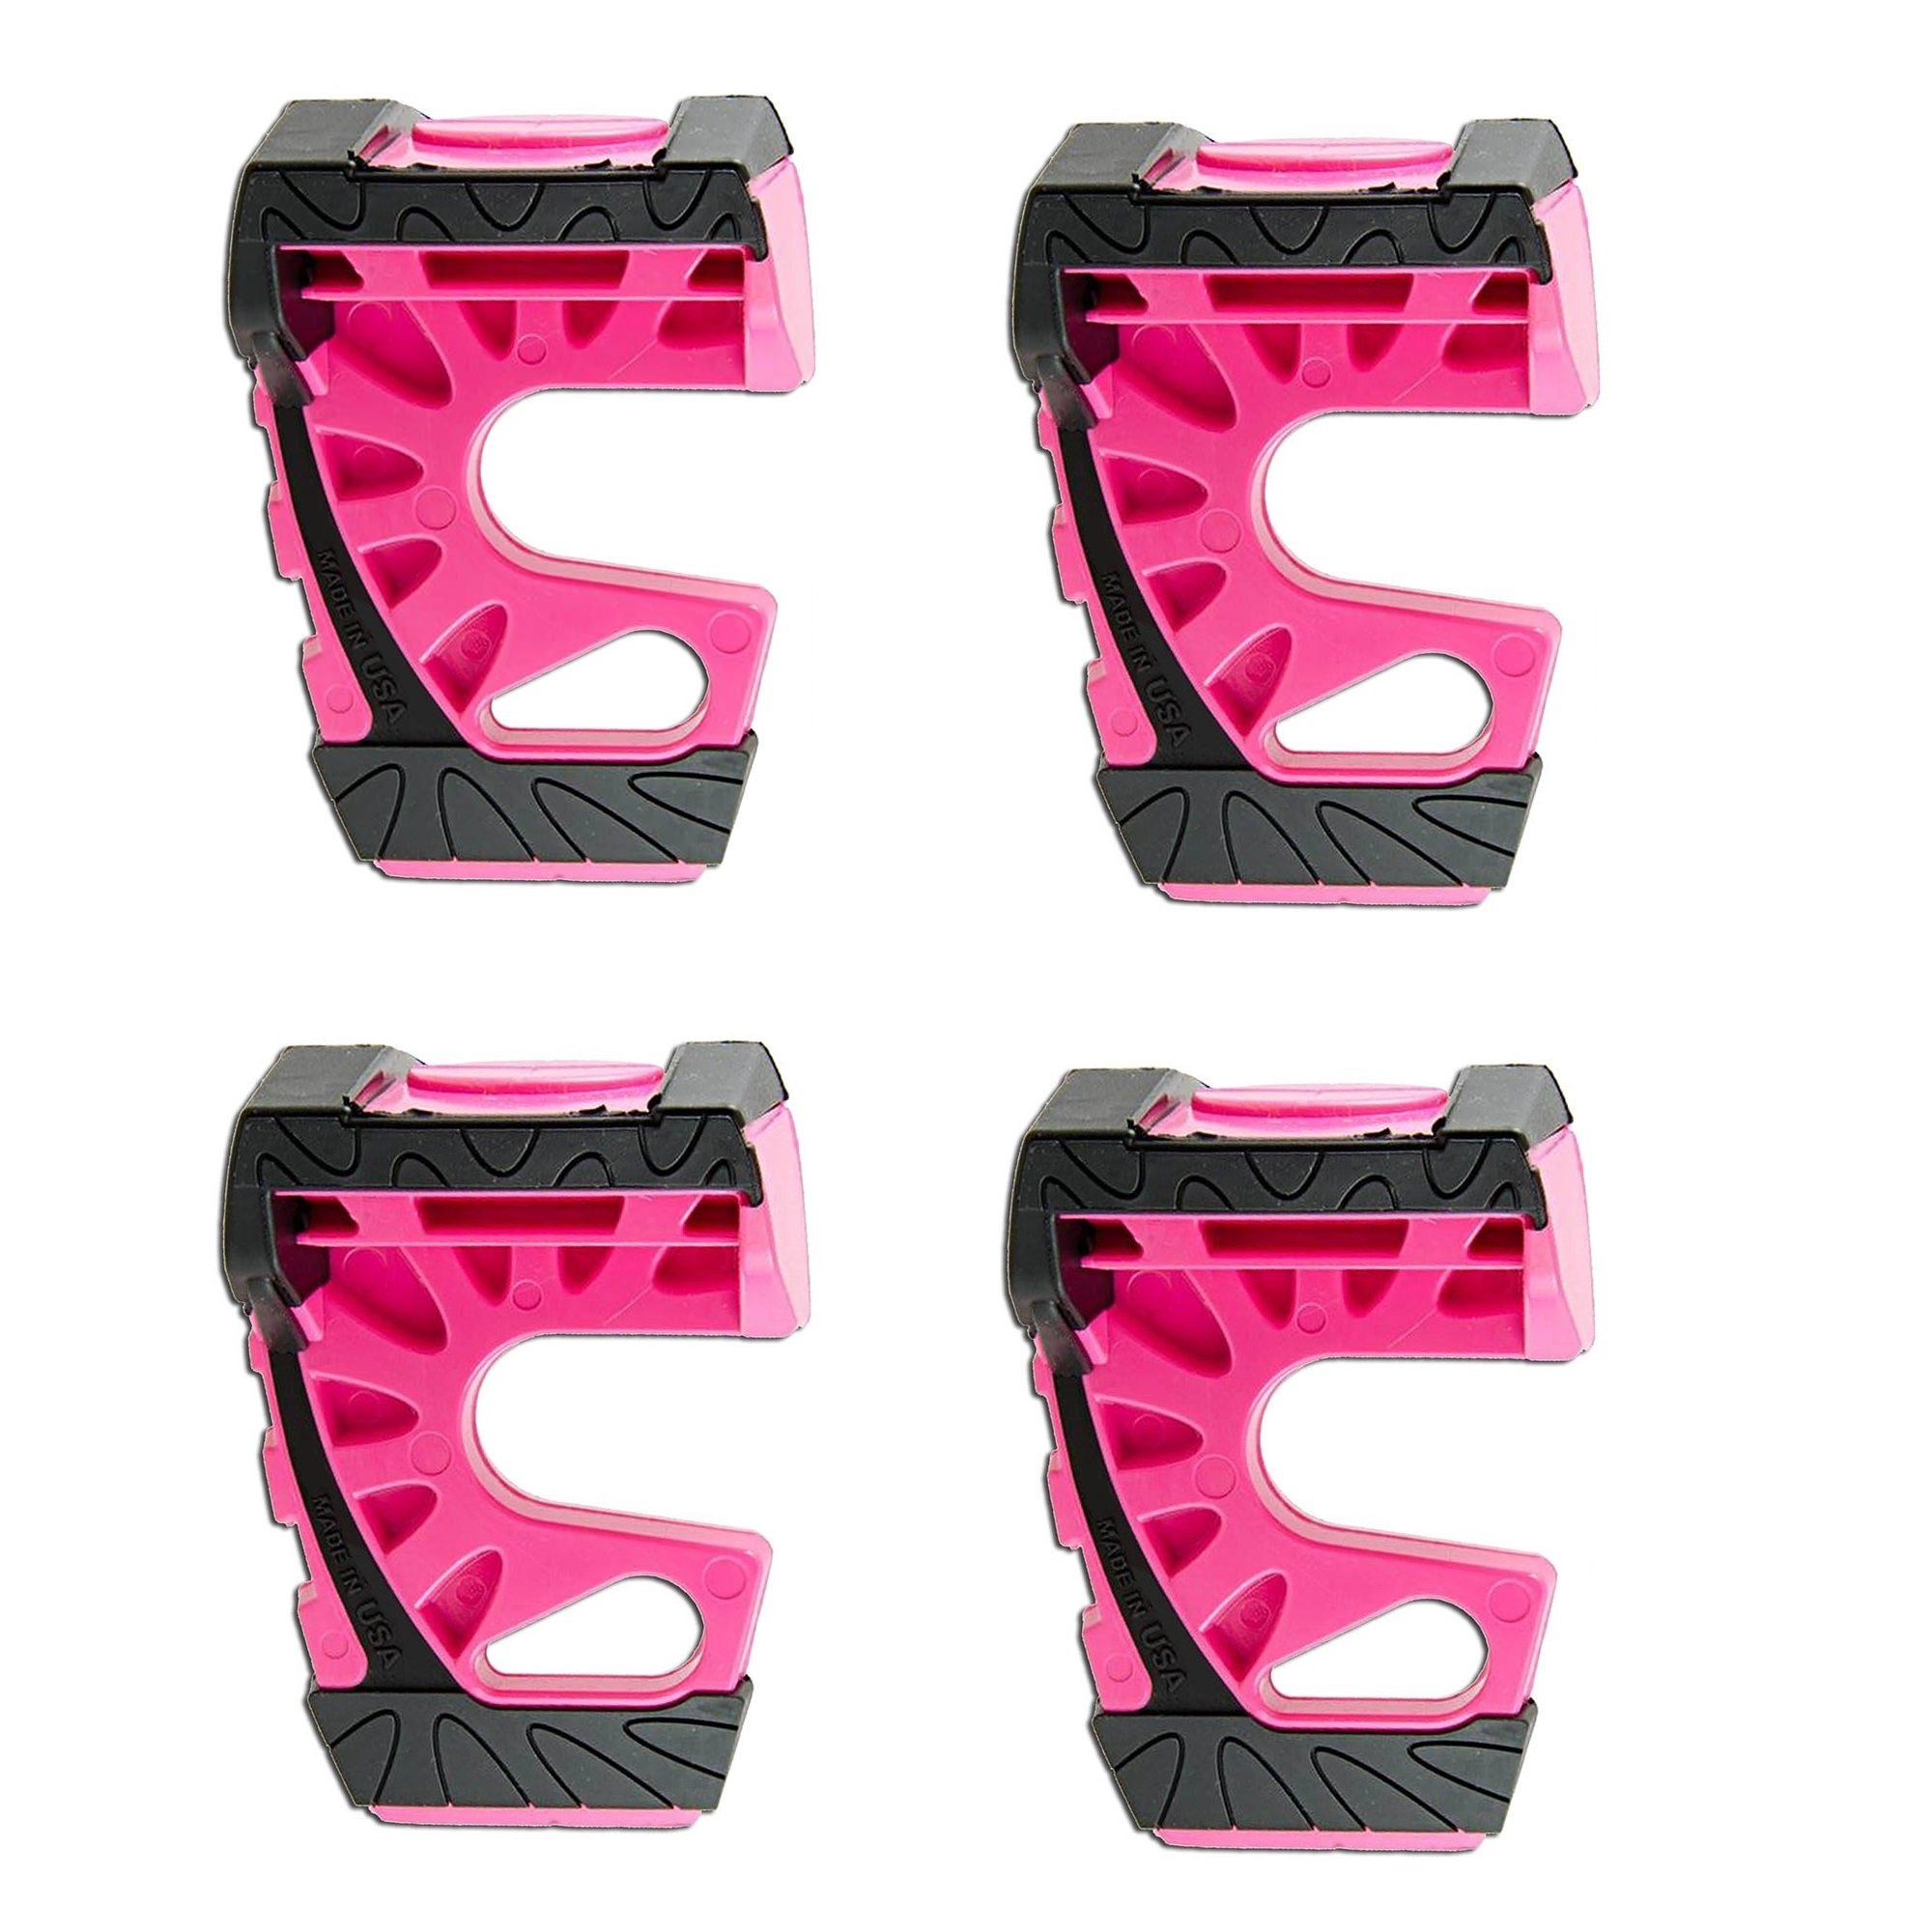 Wedge-It - The Ultimate Door Stop - Pink (4 in quantity) by Wedge-It